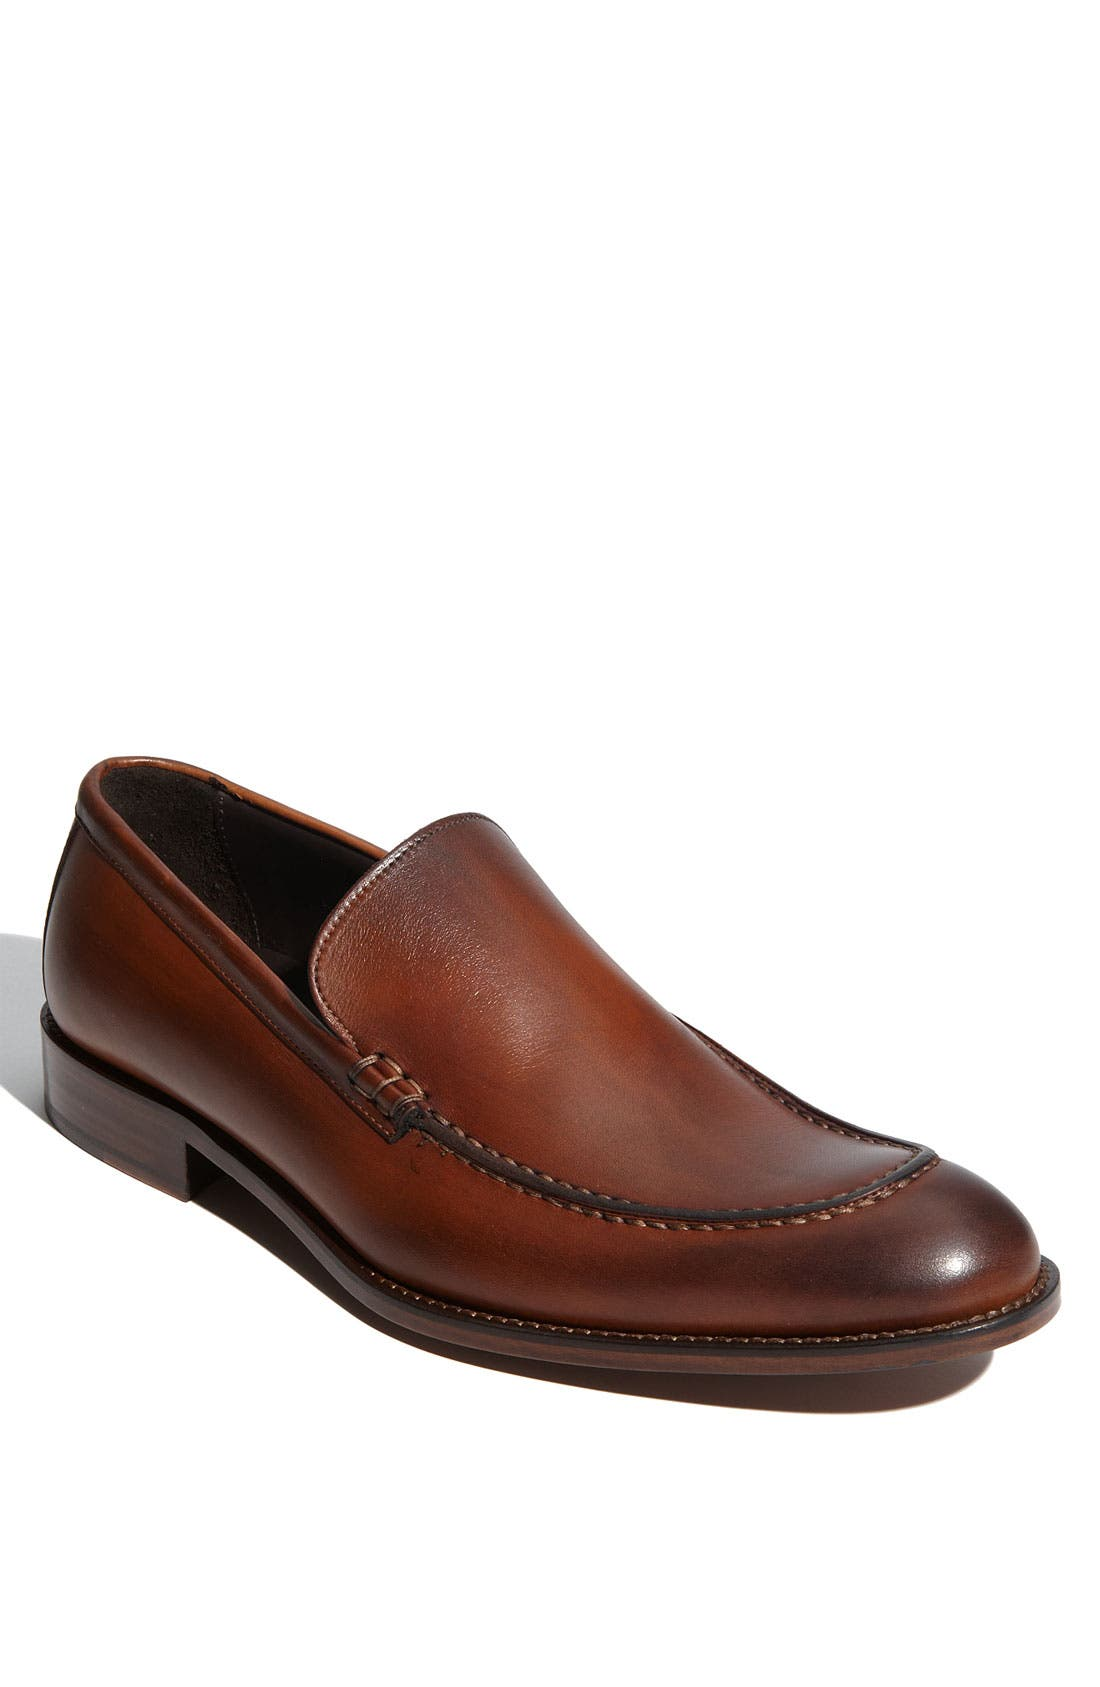 Alternate Image 1 Selected - To Boot New York 'Oakes' Loafer